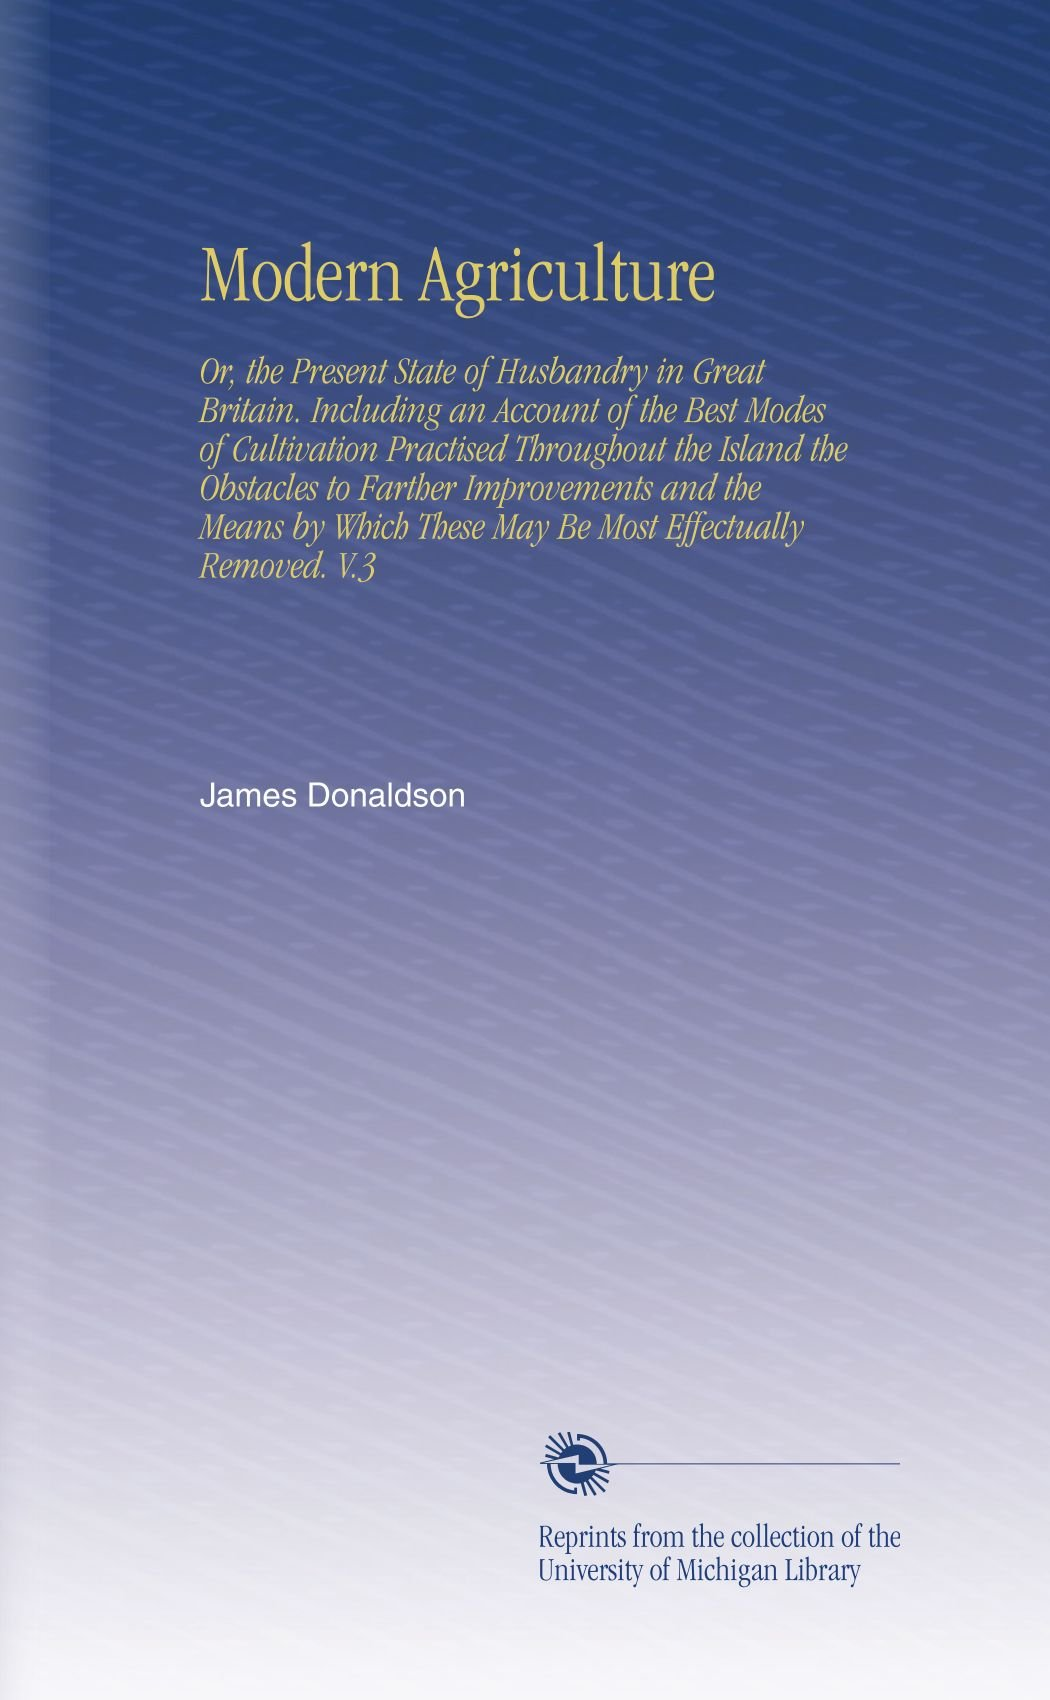 Download Modern Agriculture: Or, the Present State of Husbandry in Great Britain. Including an Account of the Best Modes of Cultivation Practised Throughout ... These May Be Most Effectually Removed. V.3 pdf epub